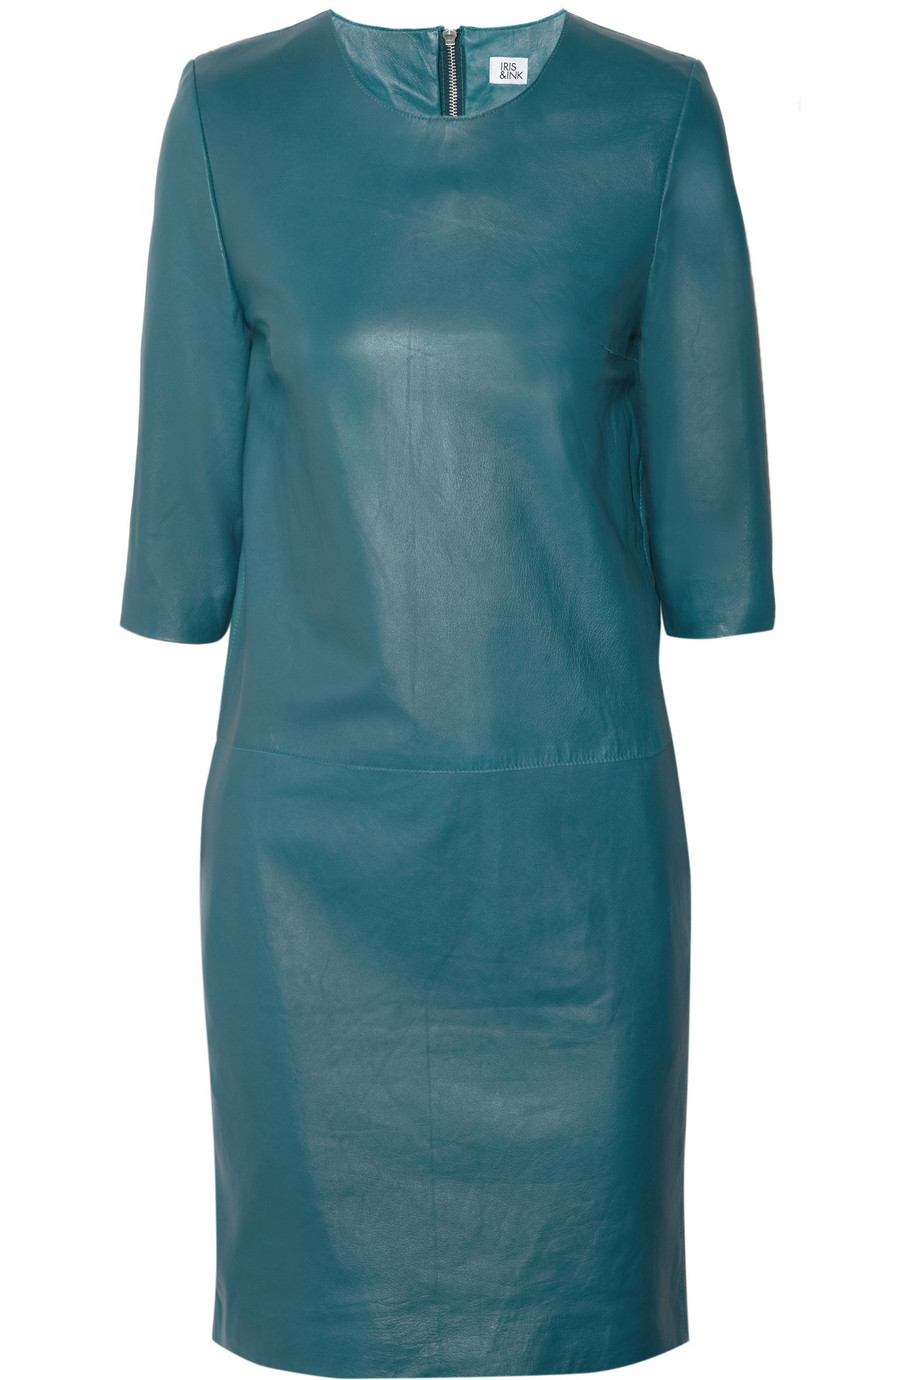 The Outnet leather dress